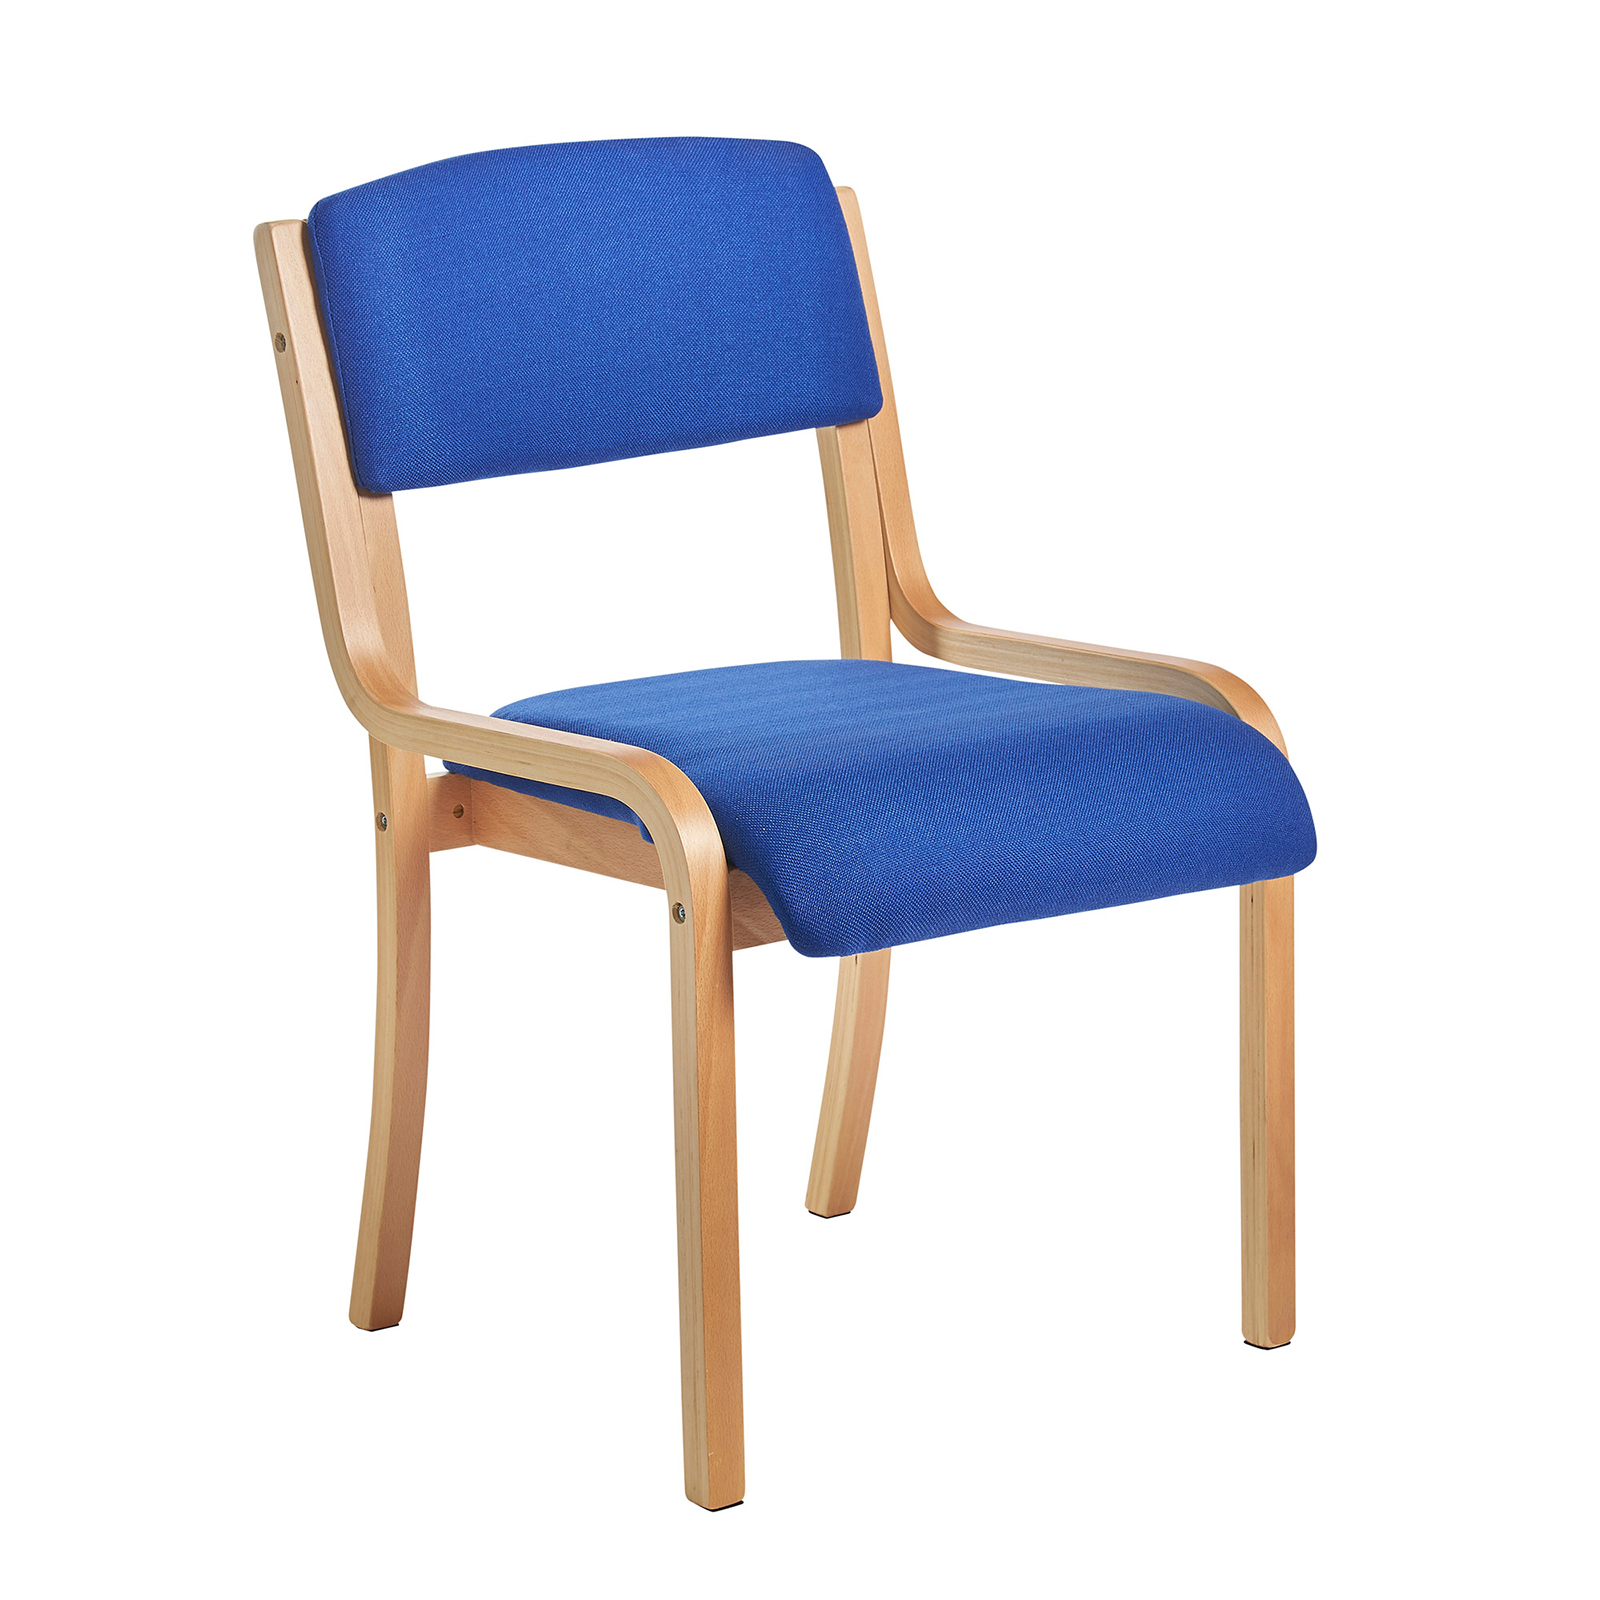 Boardroom / Meeting Prague wooden conference chair with no arms - blue